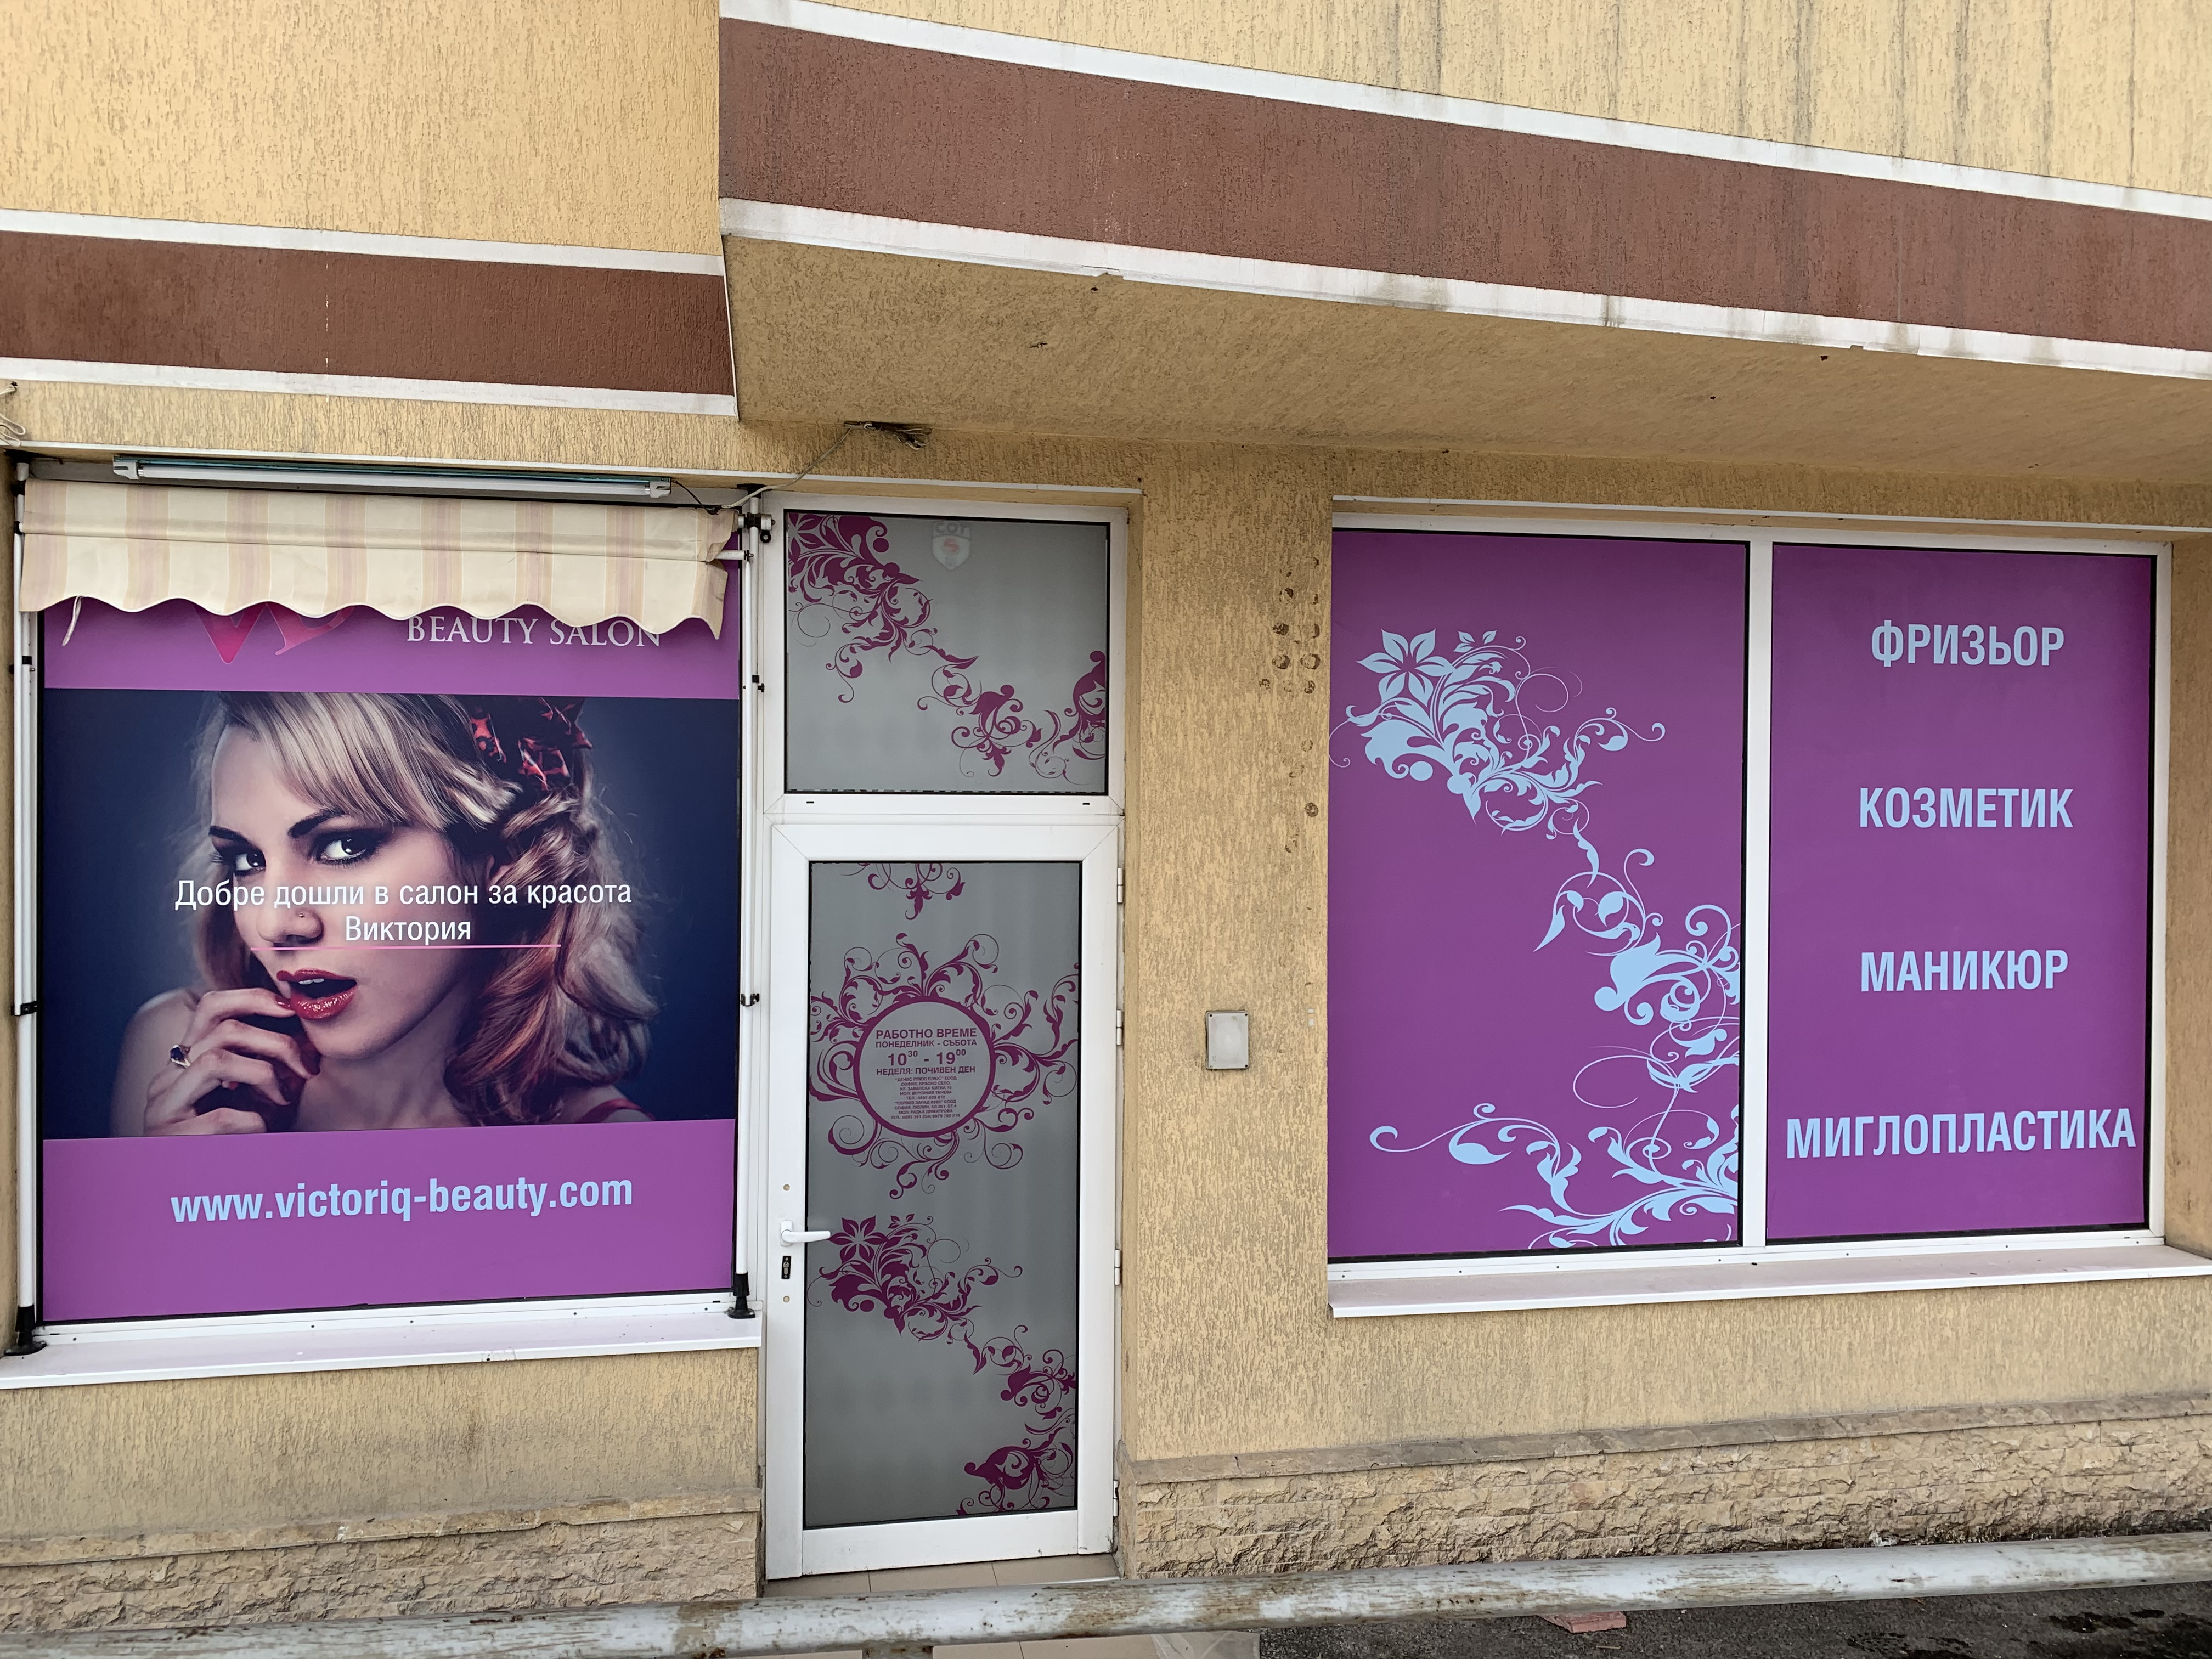 Victoria-Beauty Salon